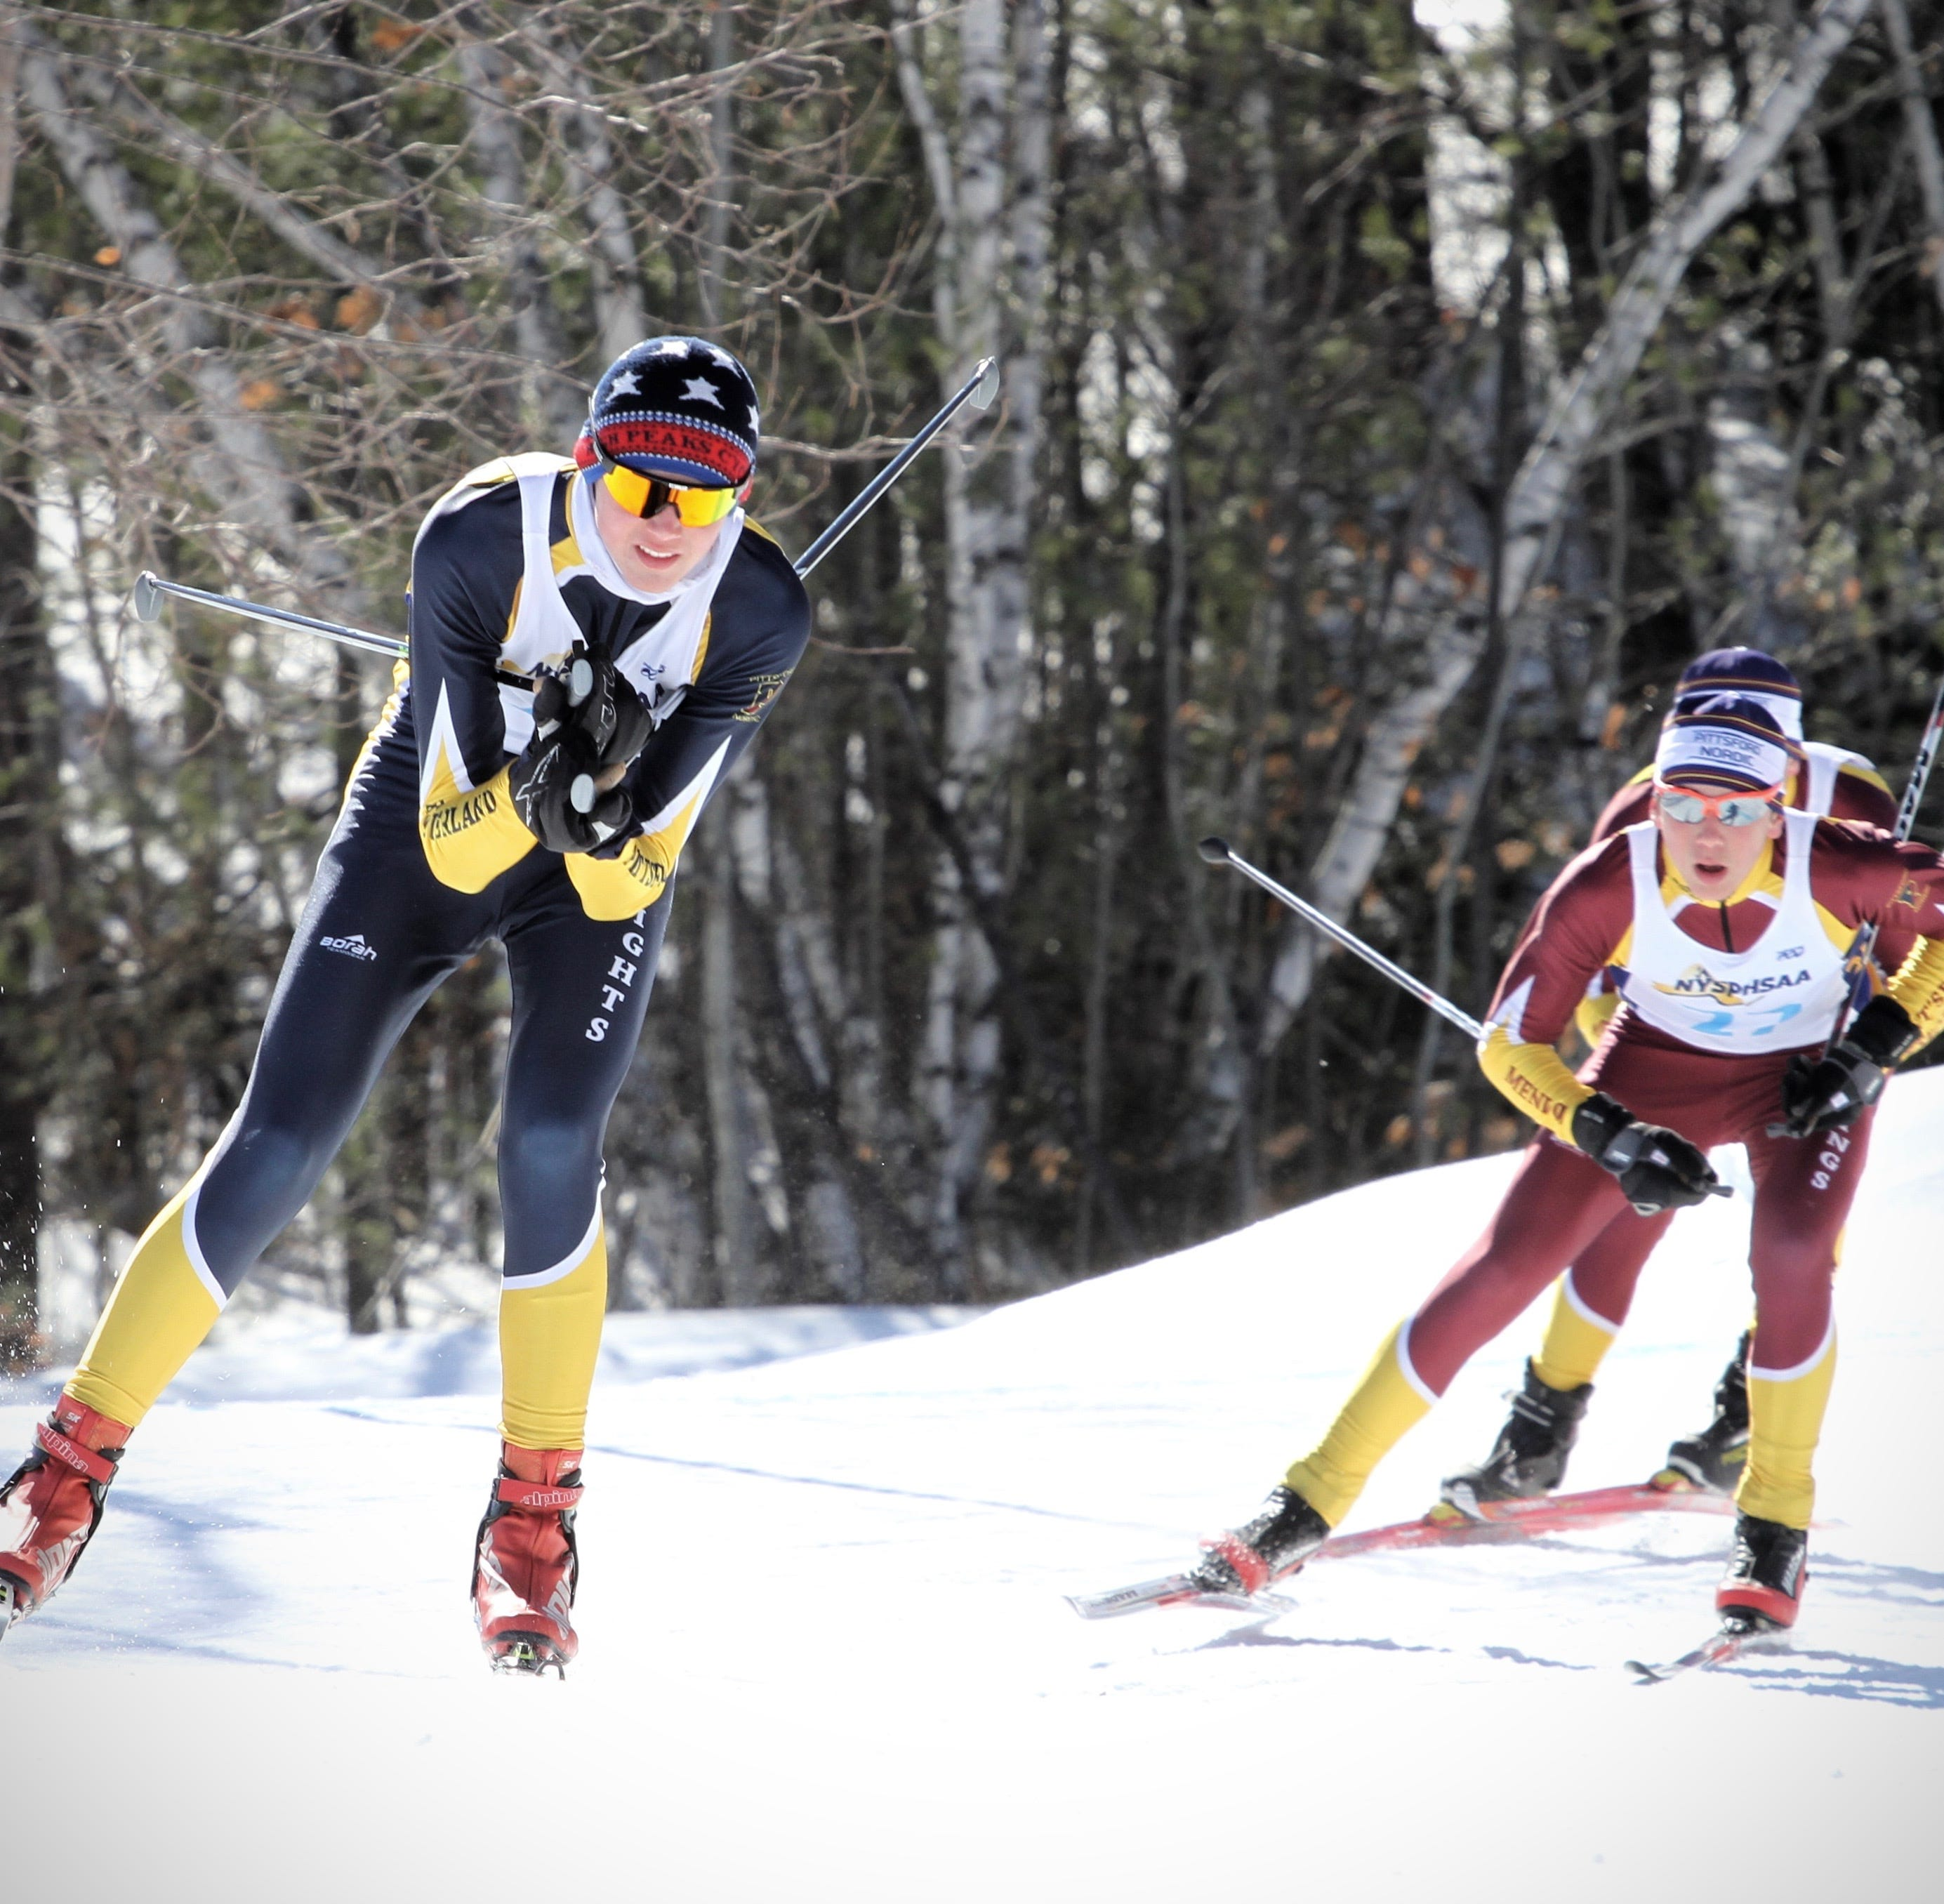 2019 AGR Boys Nordic Skiing Team: These are the best athletes in Section V